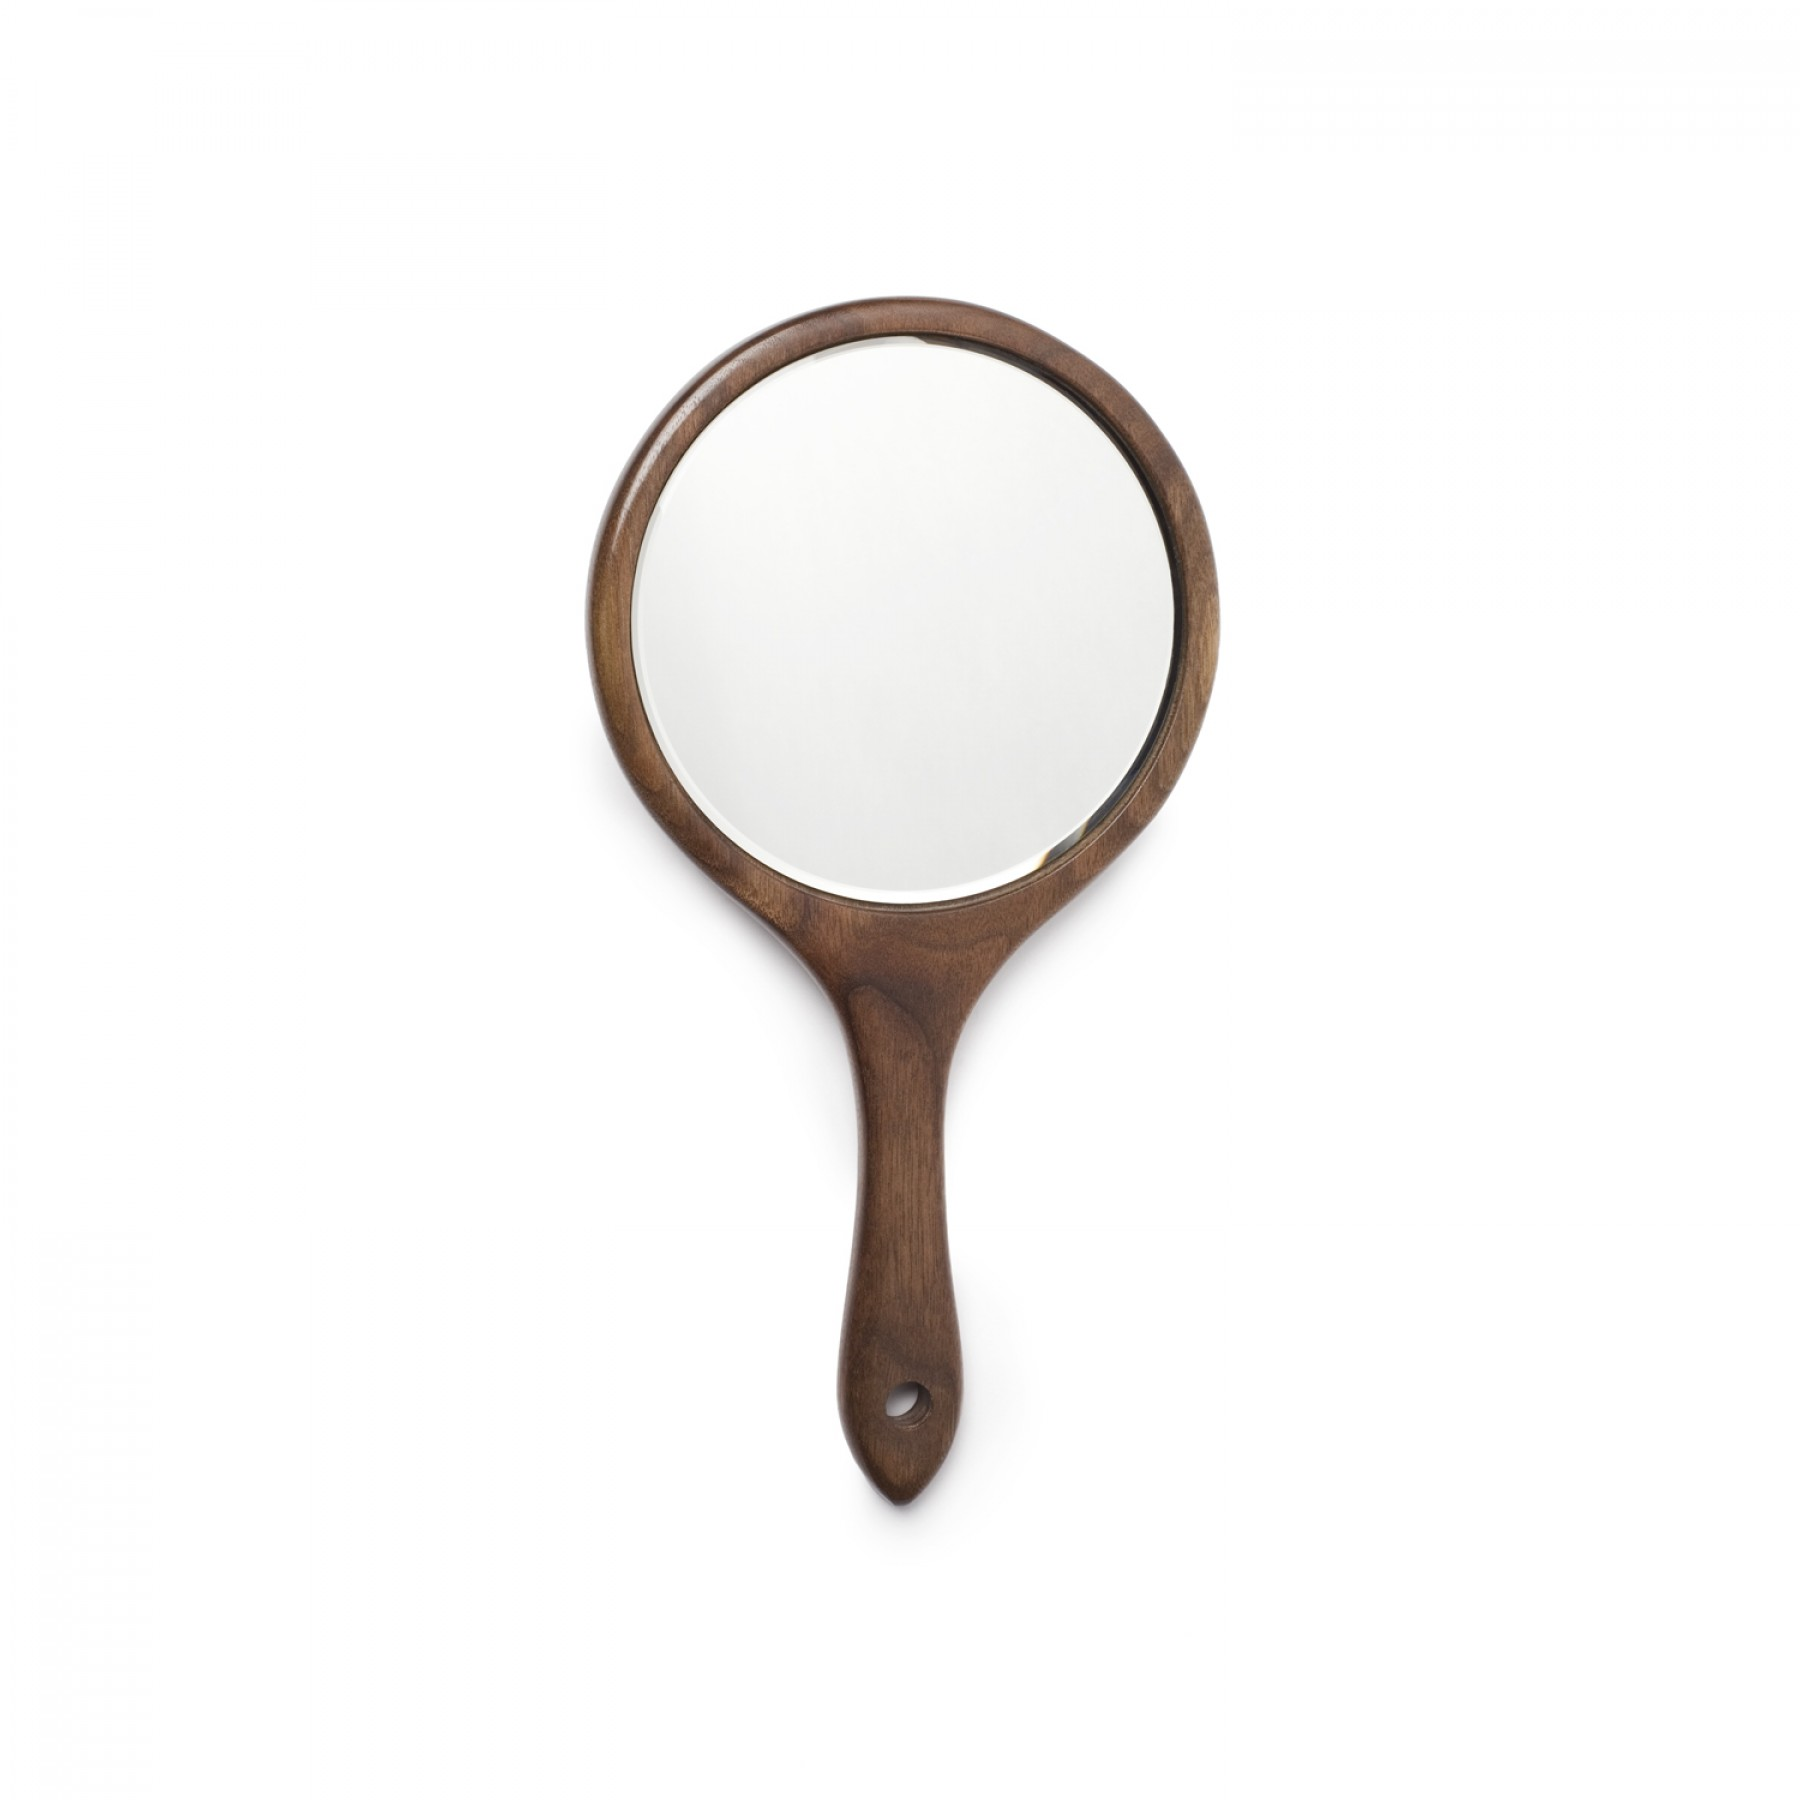 Fellow Barber Walnut Hand Mirror - Fellow Barber - Brands. Hand Mirror Clipart